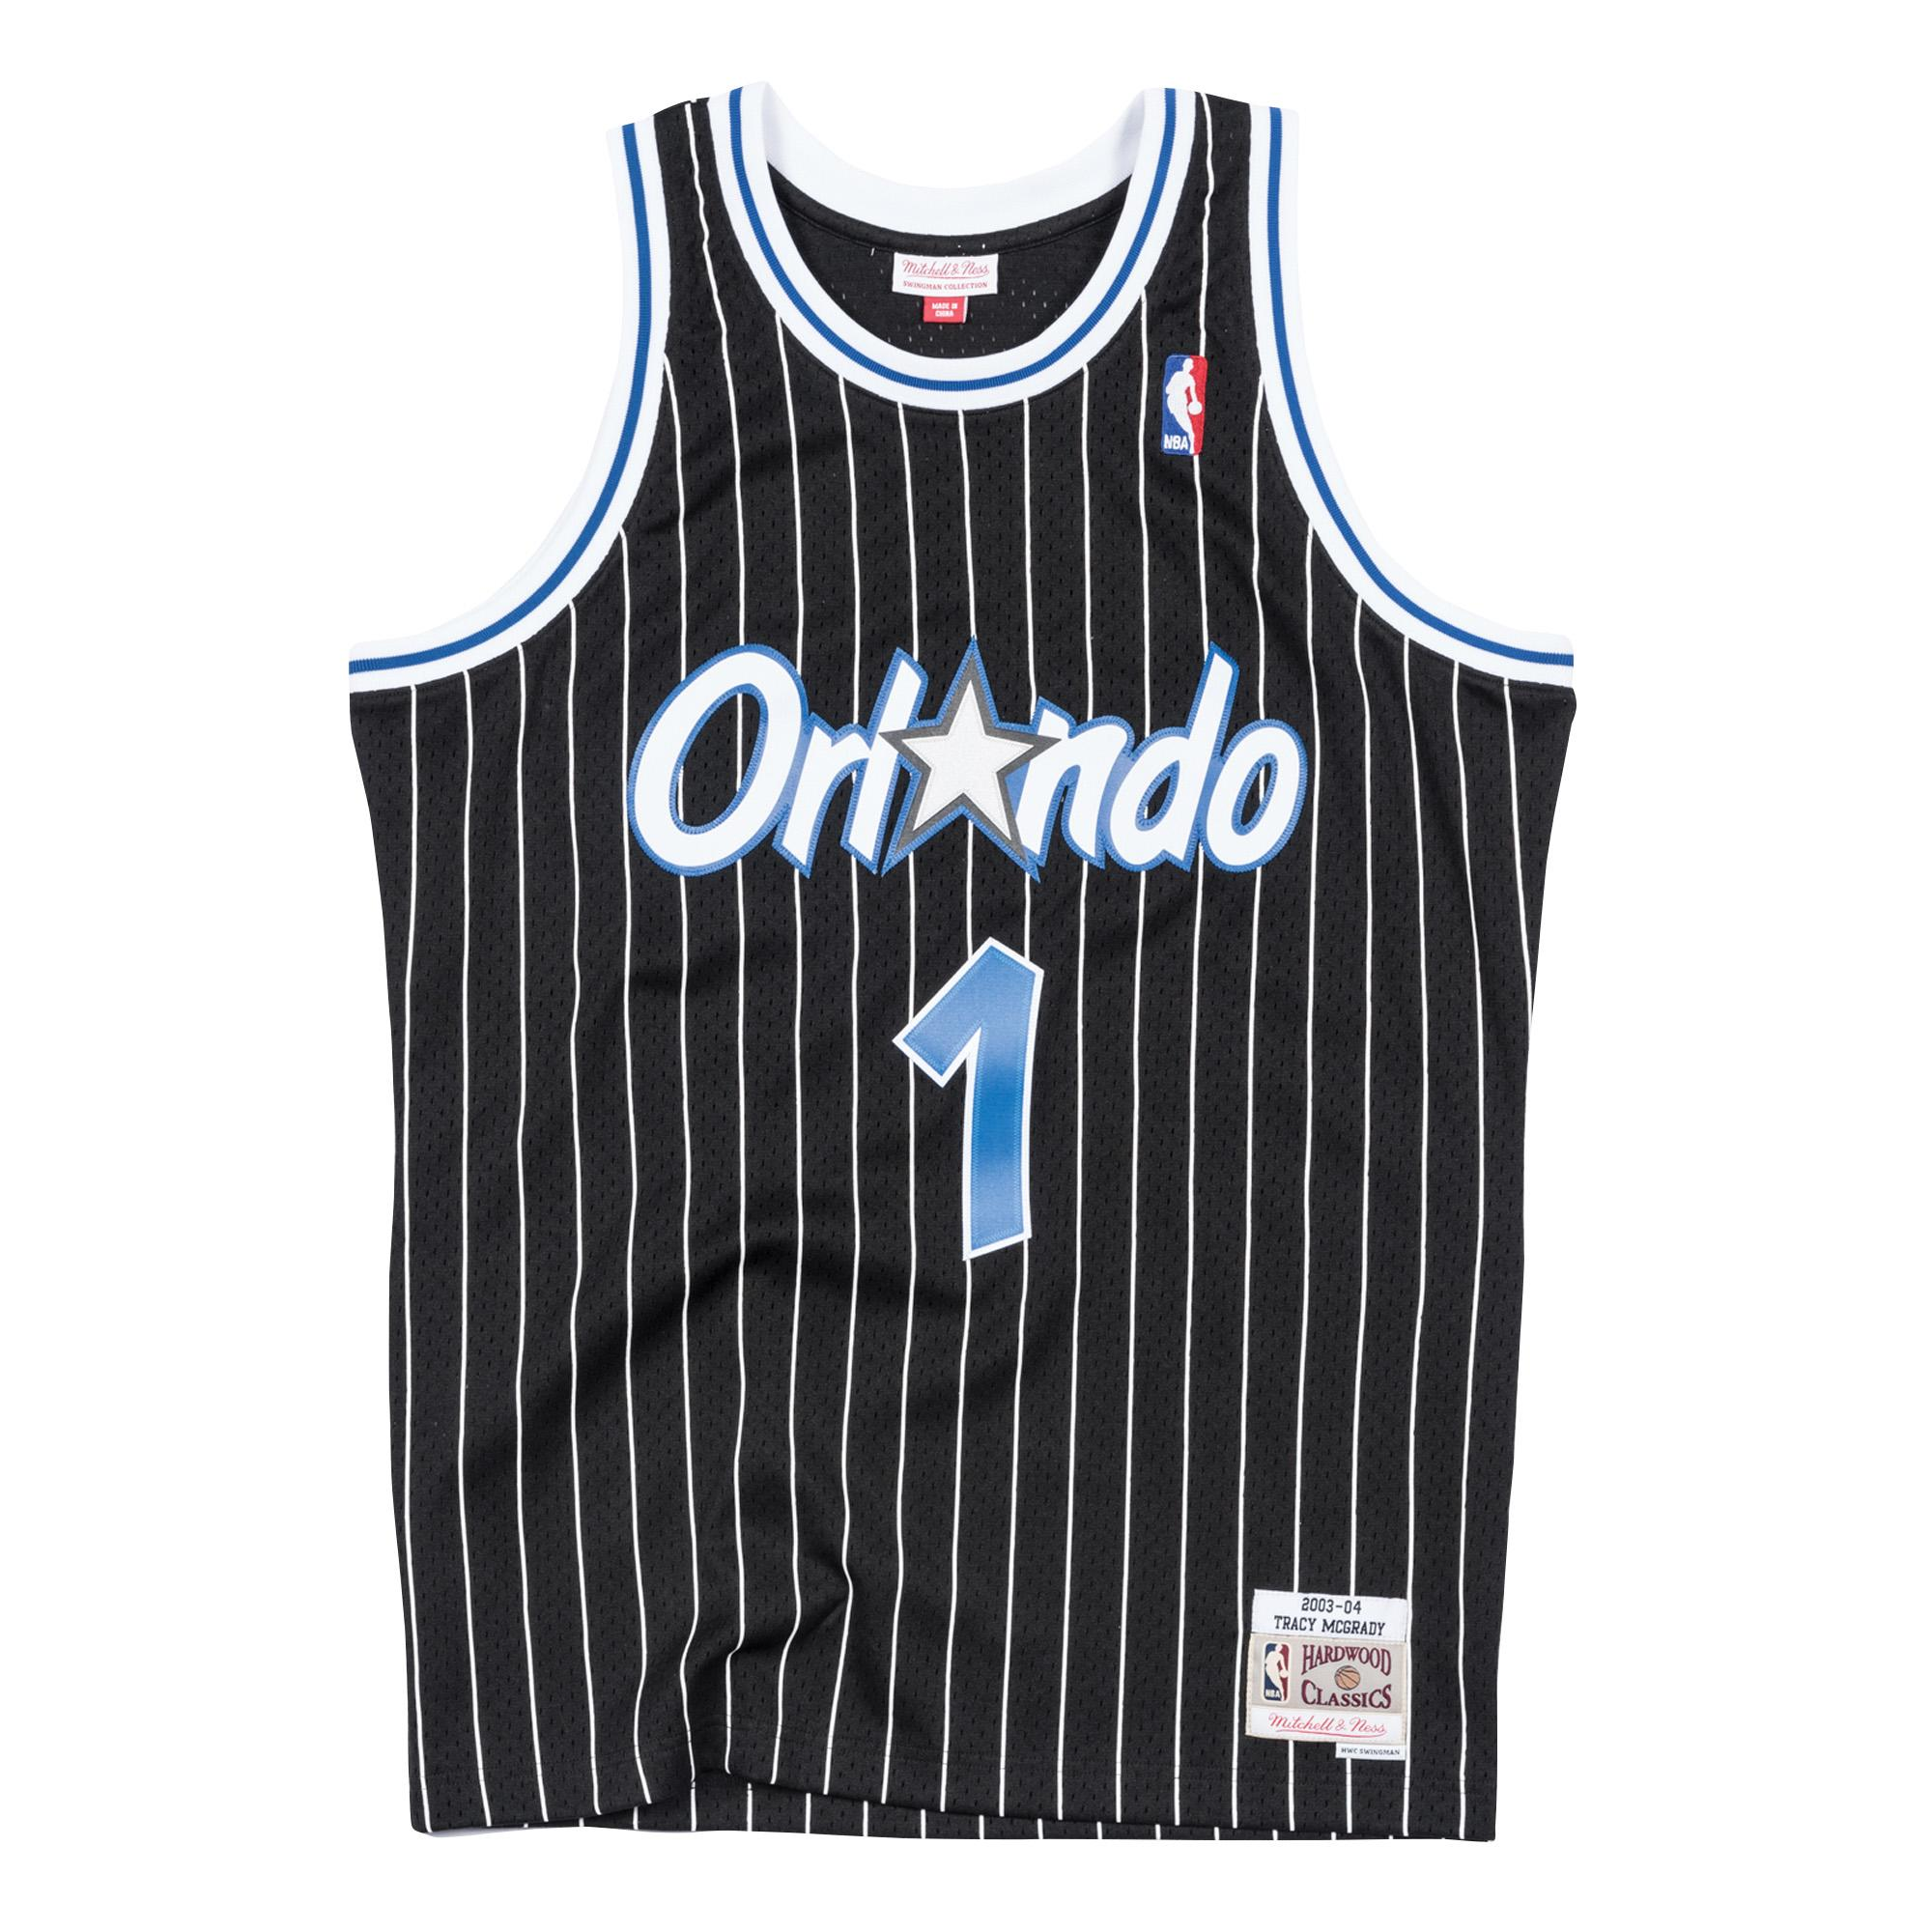 5b69a1497 Tracy McGrady 2003-04 Swingman Jersey Orlando Magic